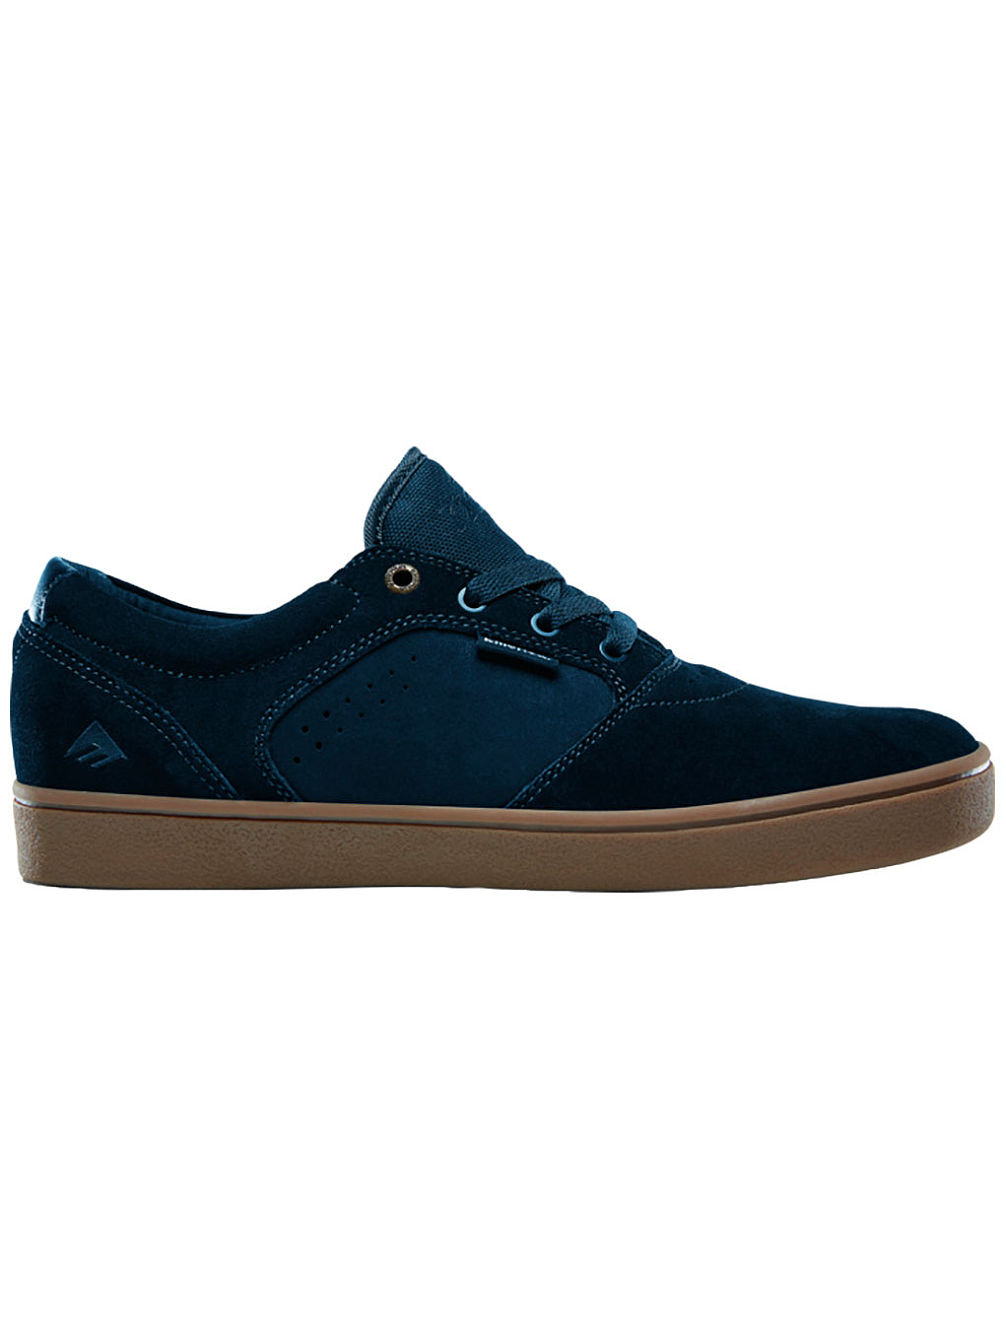 Figgy Dose Skate Shoes